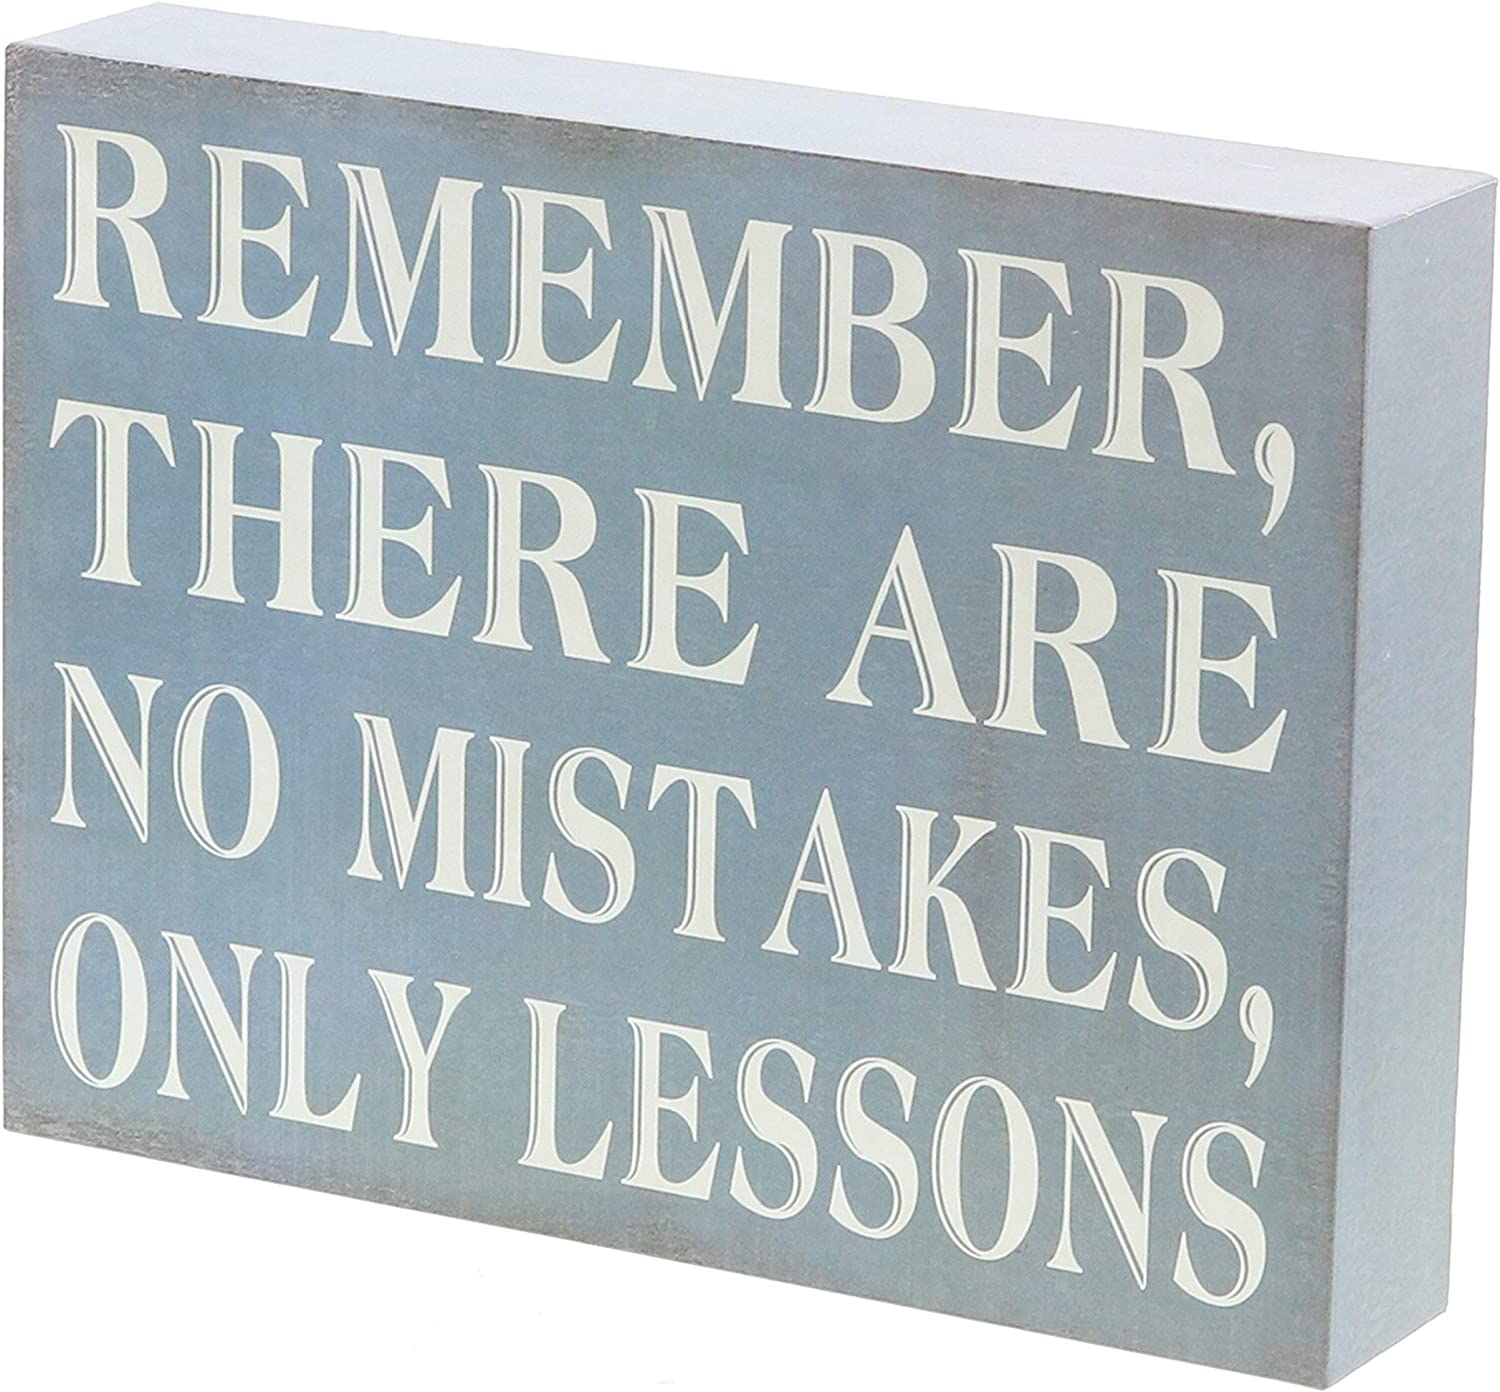 "Barnyard Designs Remember There are No Mistakes Only Lessons Box Sign Primitive Country Motivational Inspirational Quote Sign Home and Office Decor 8"" x 6"""